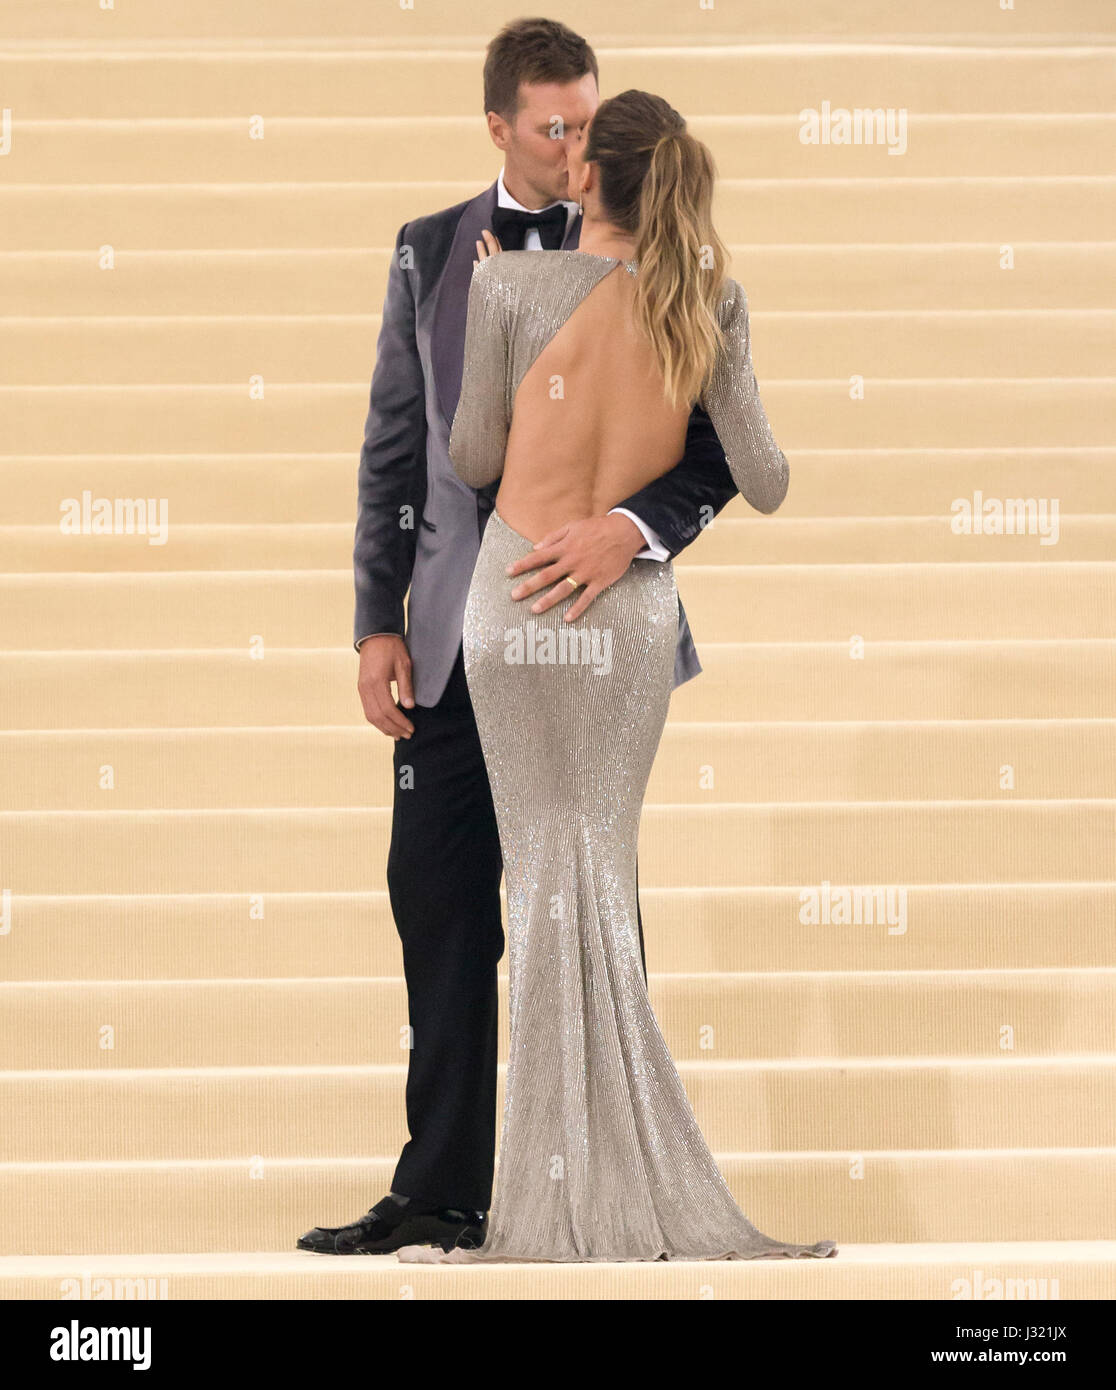 New York, USA. 1st May, 2017. Tom Brady and Gisele Bundchen attend the 'Rei Kawakubo/Comme des Garcons: Art Of The Stock Foto